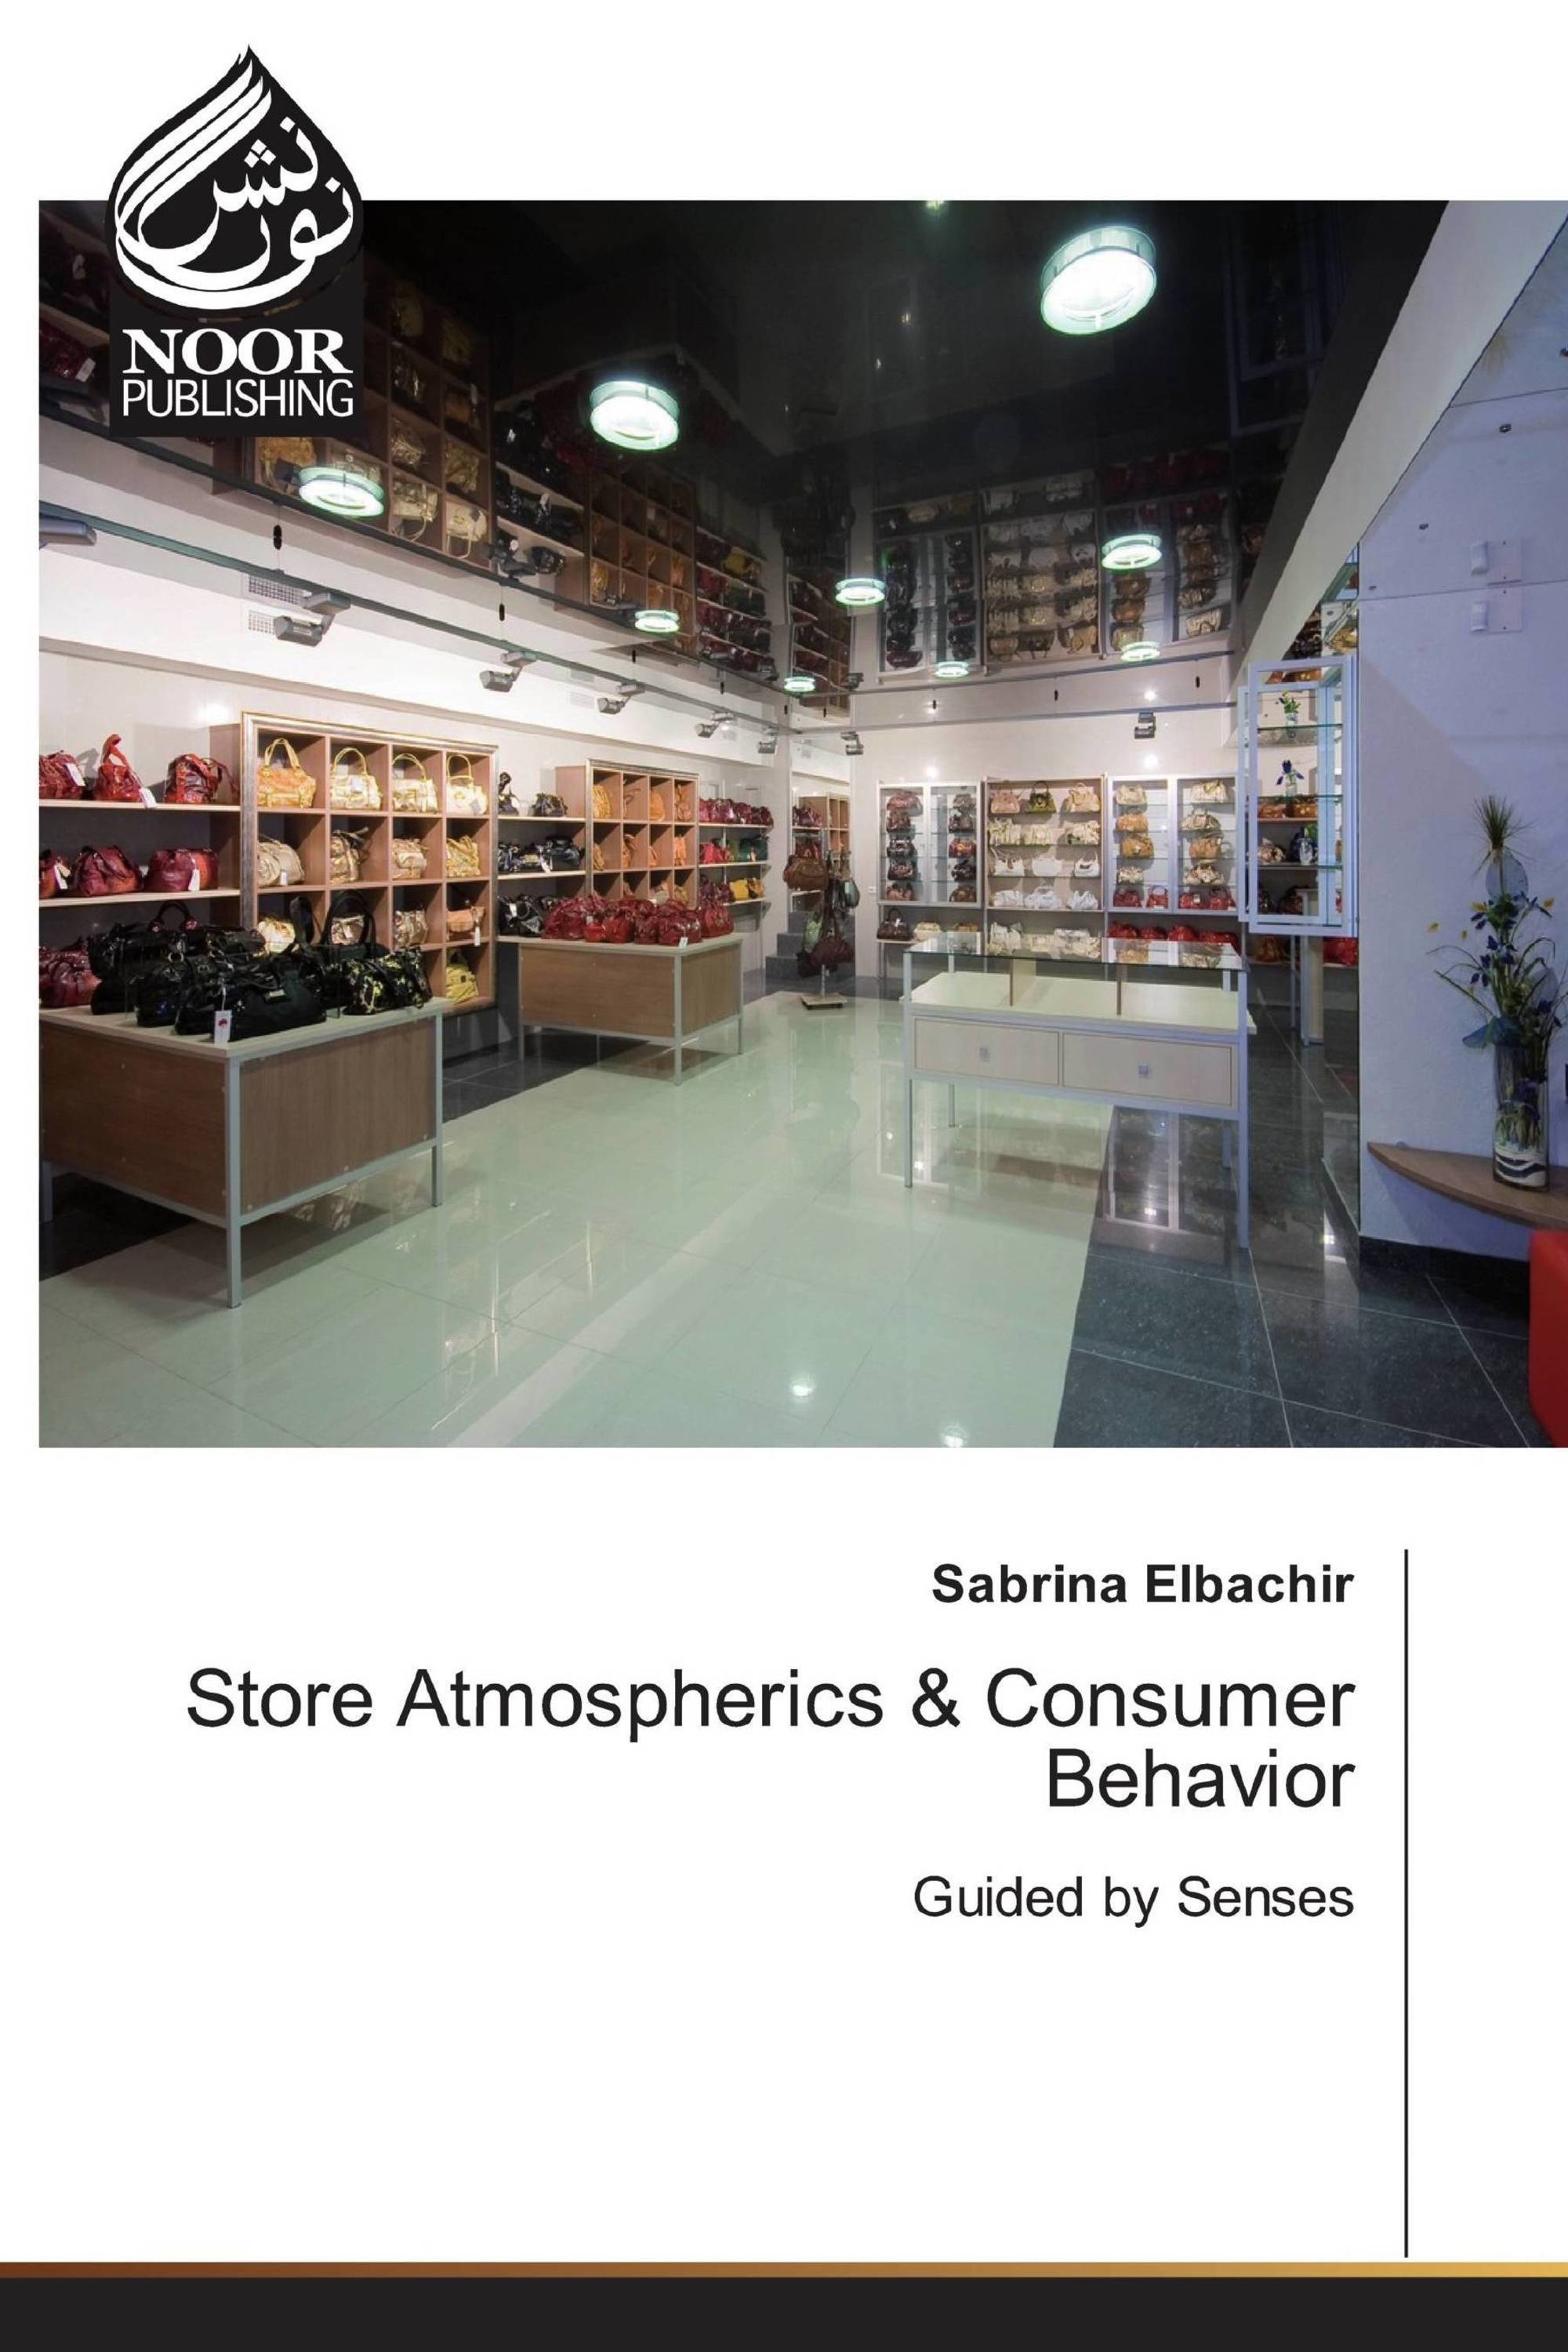 Store Atmospherics & Consumer Behavior